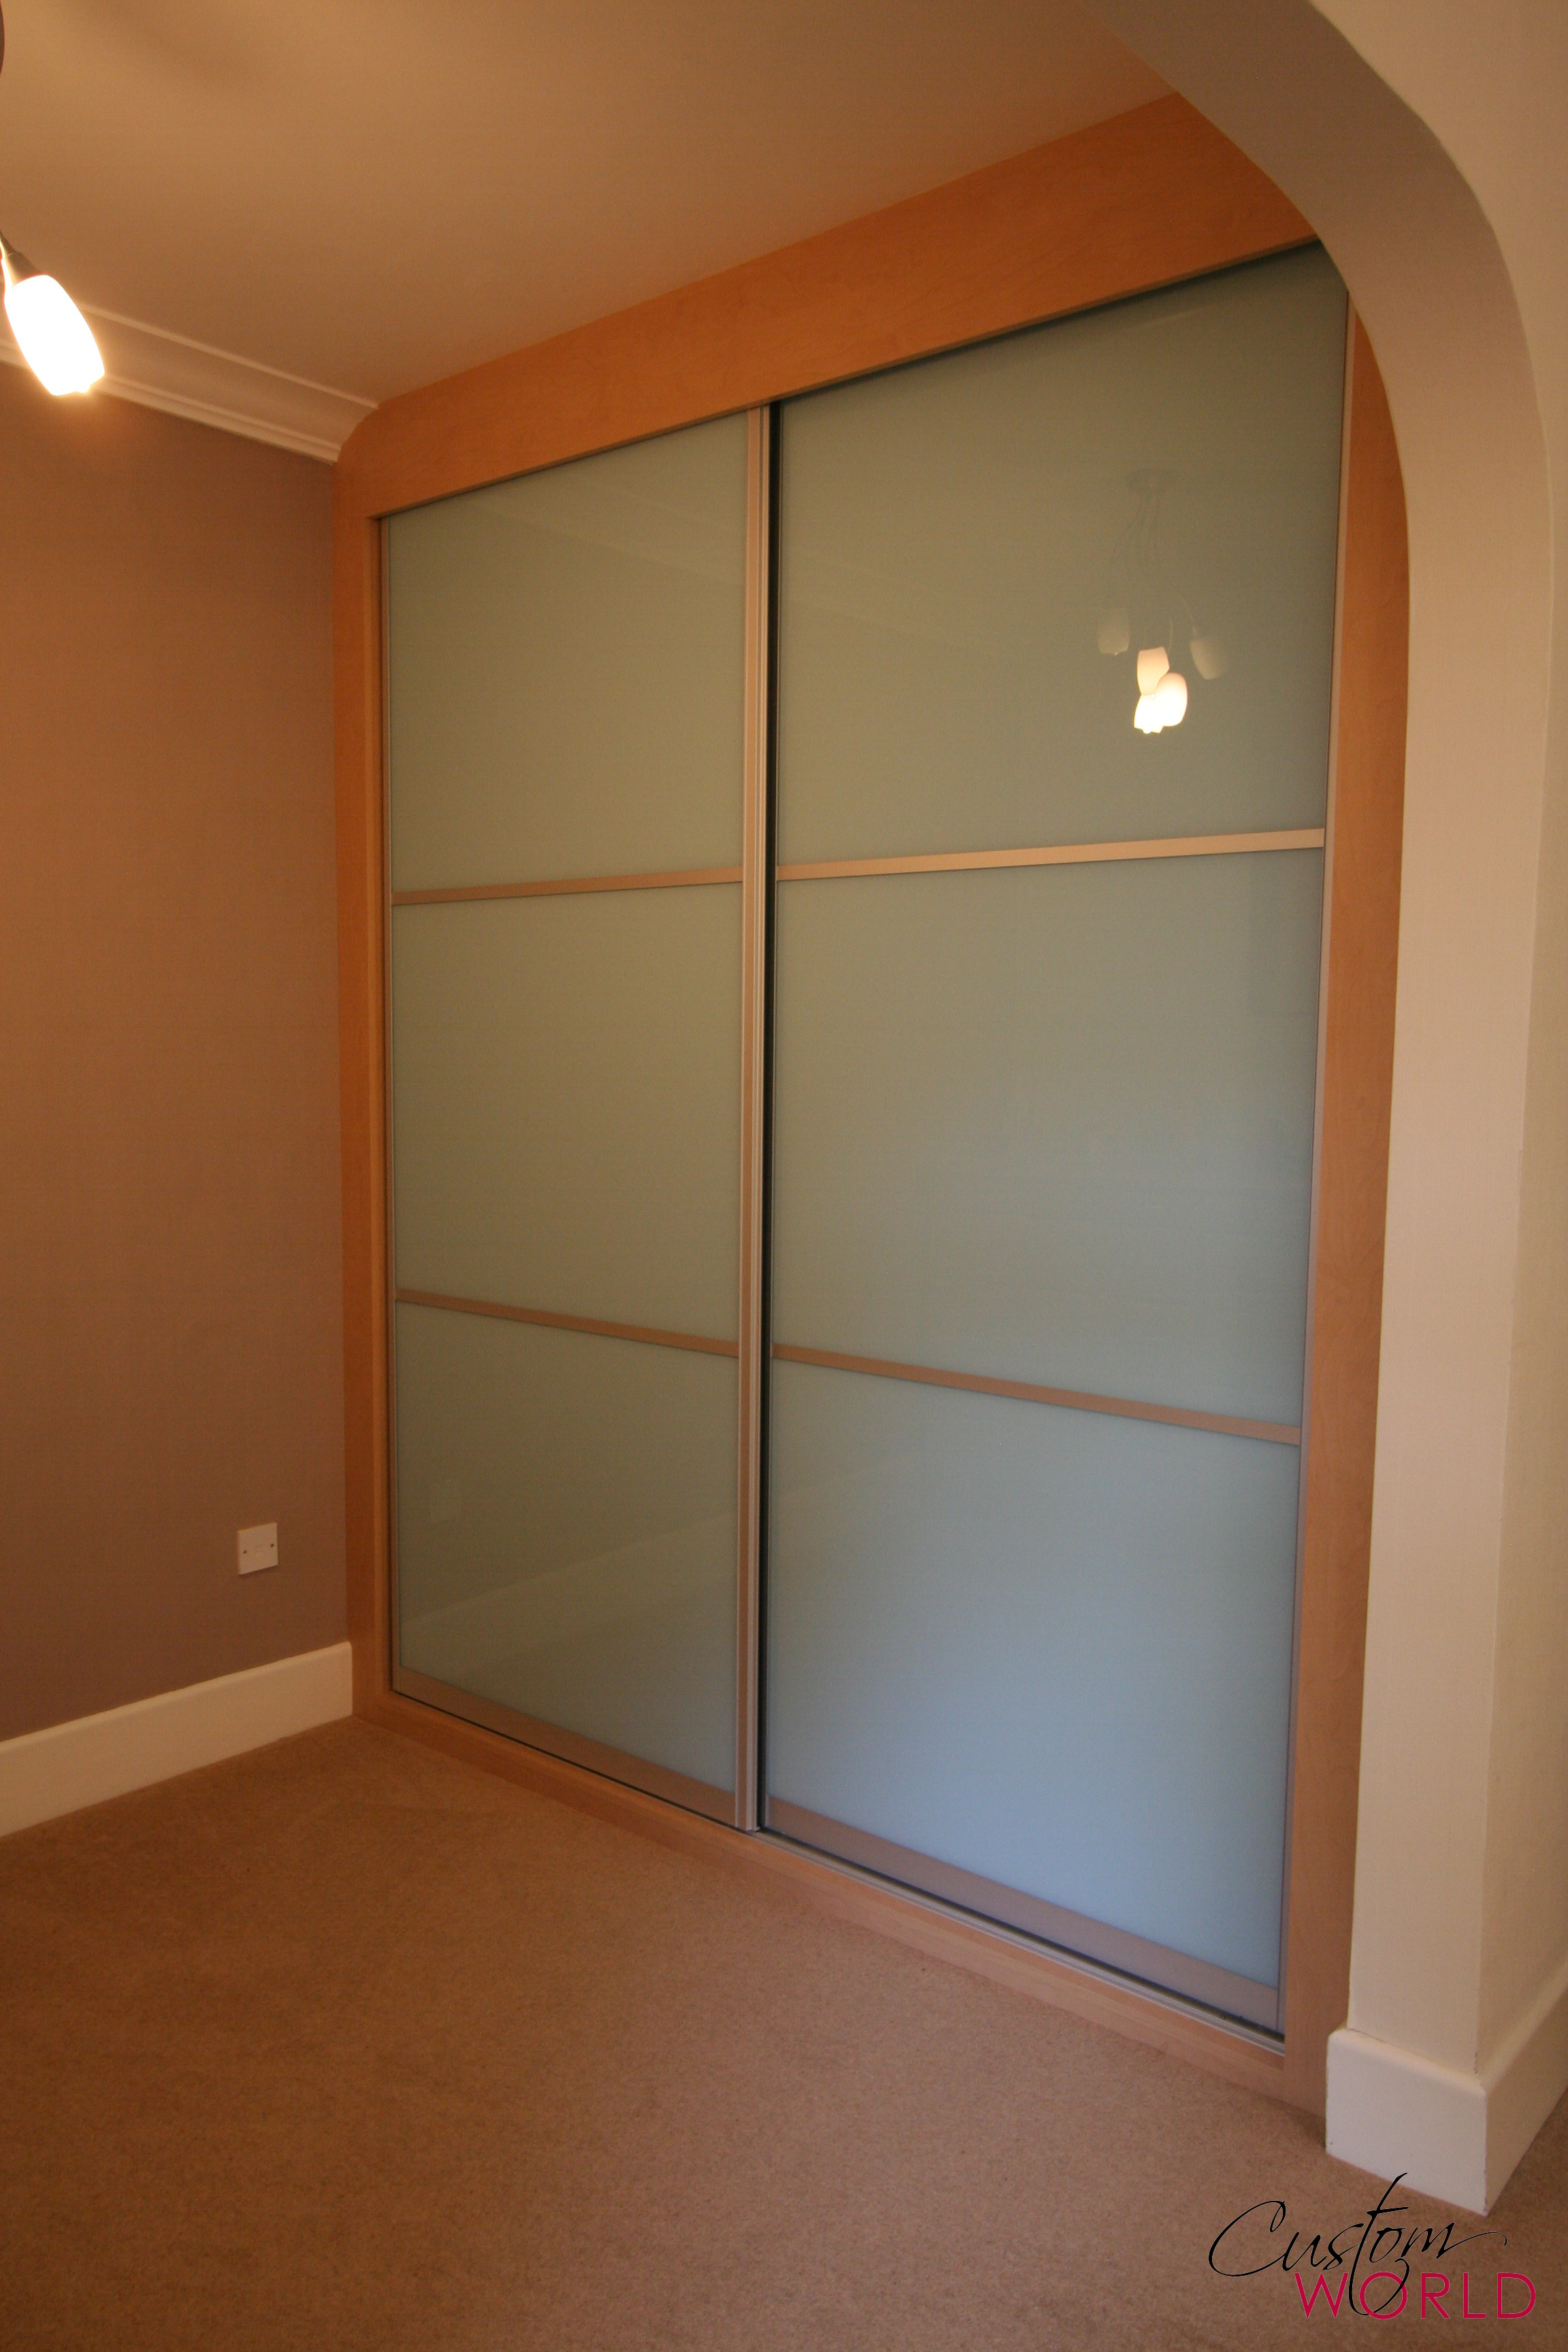 2 door sliding wardrobe with split panels